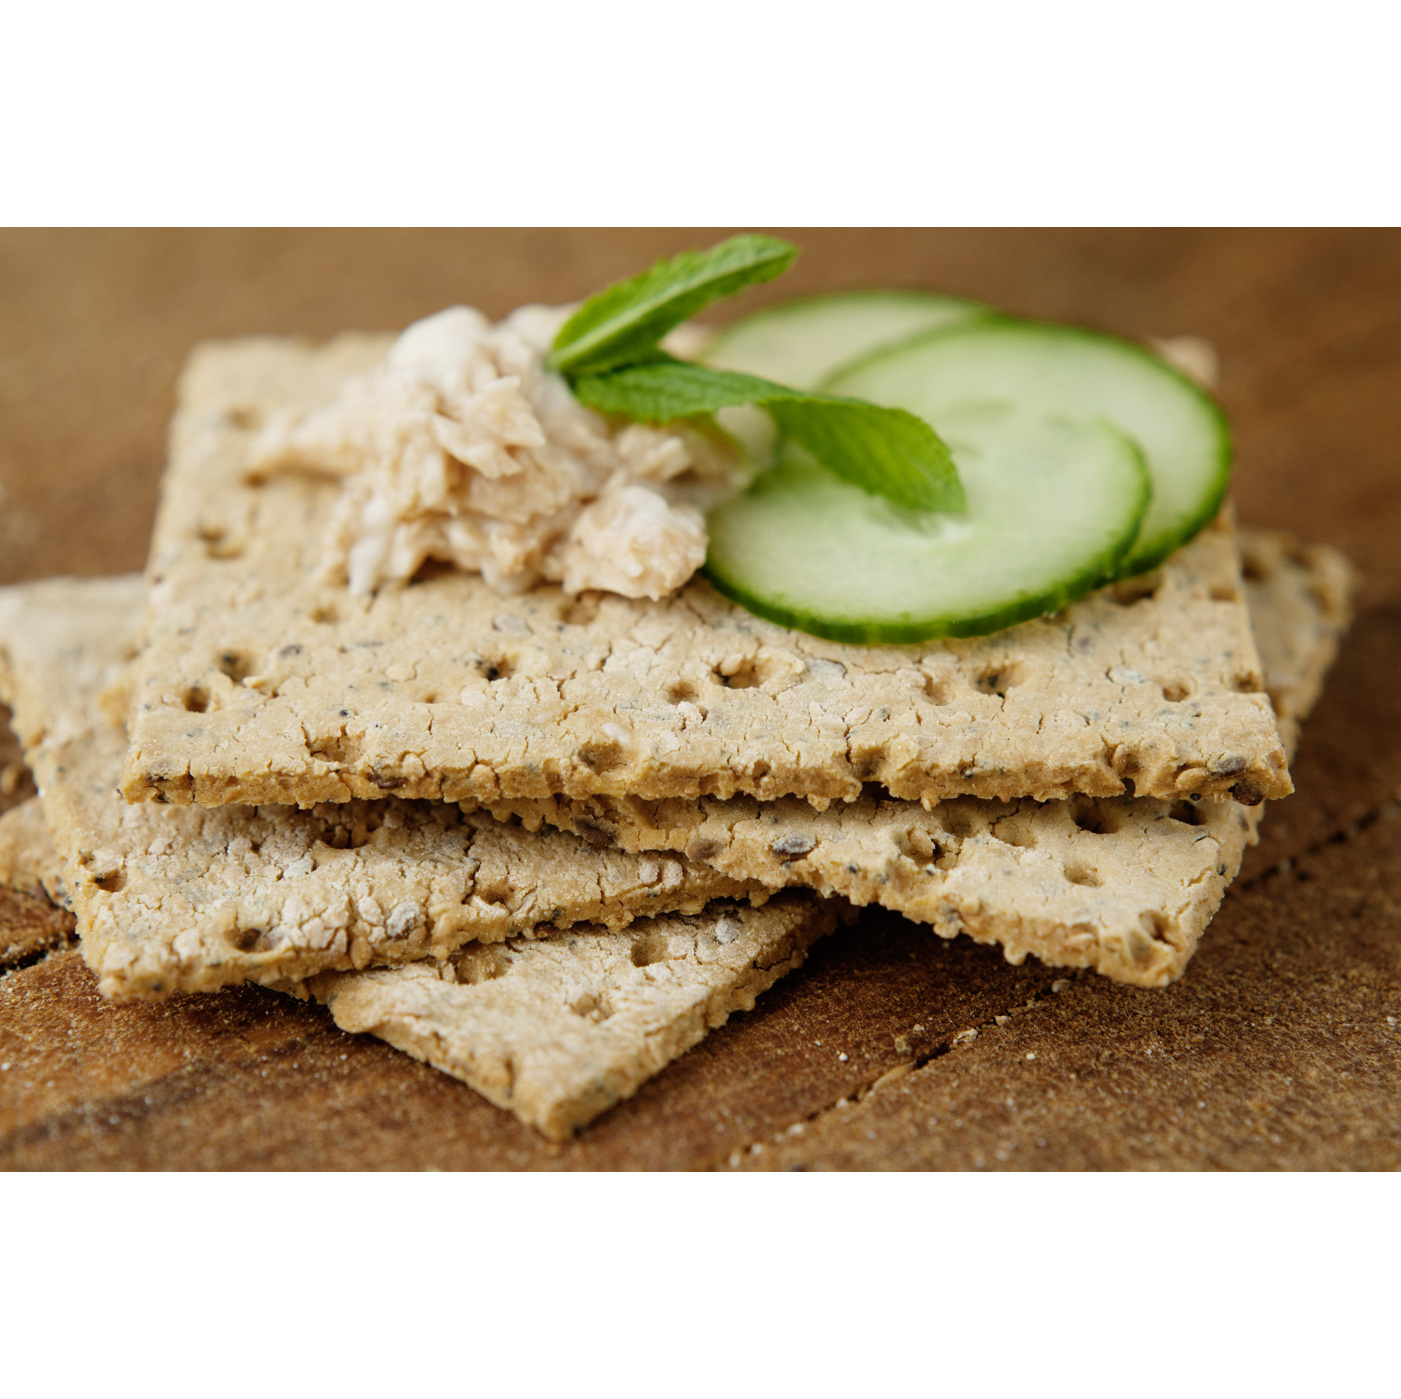 corn crackers for lunch